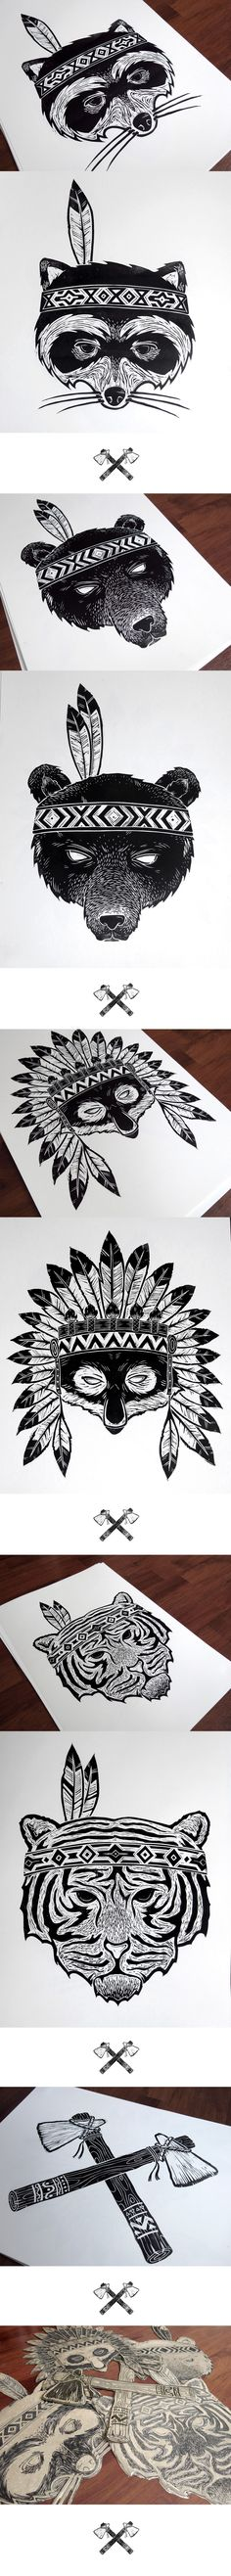 Lino Cut Indians on Behance